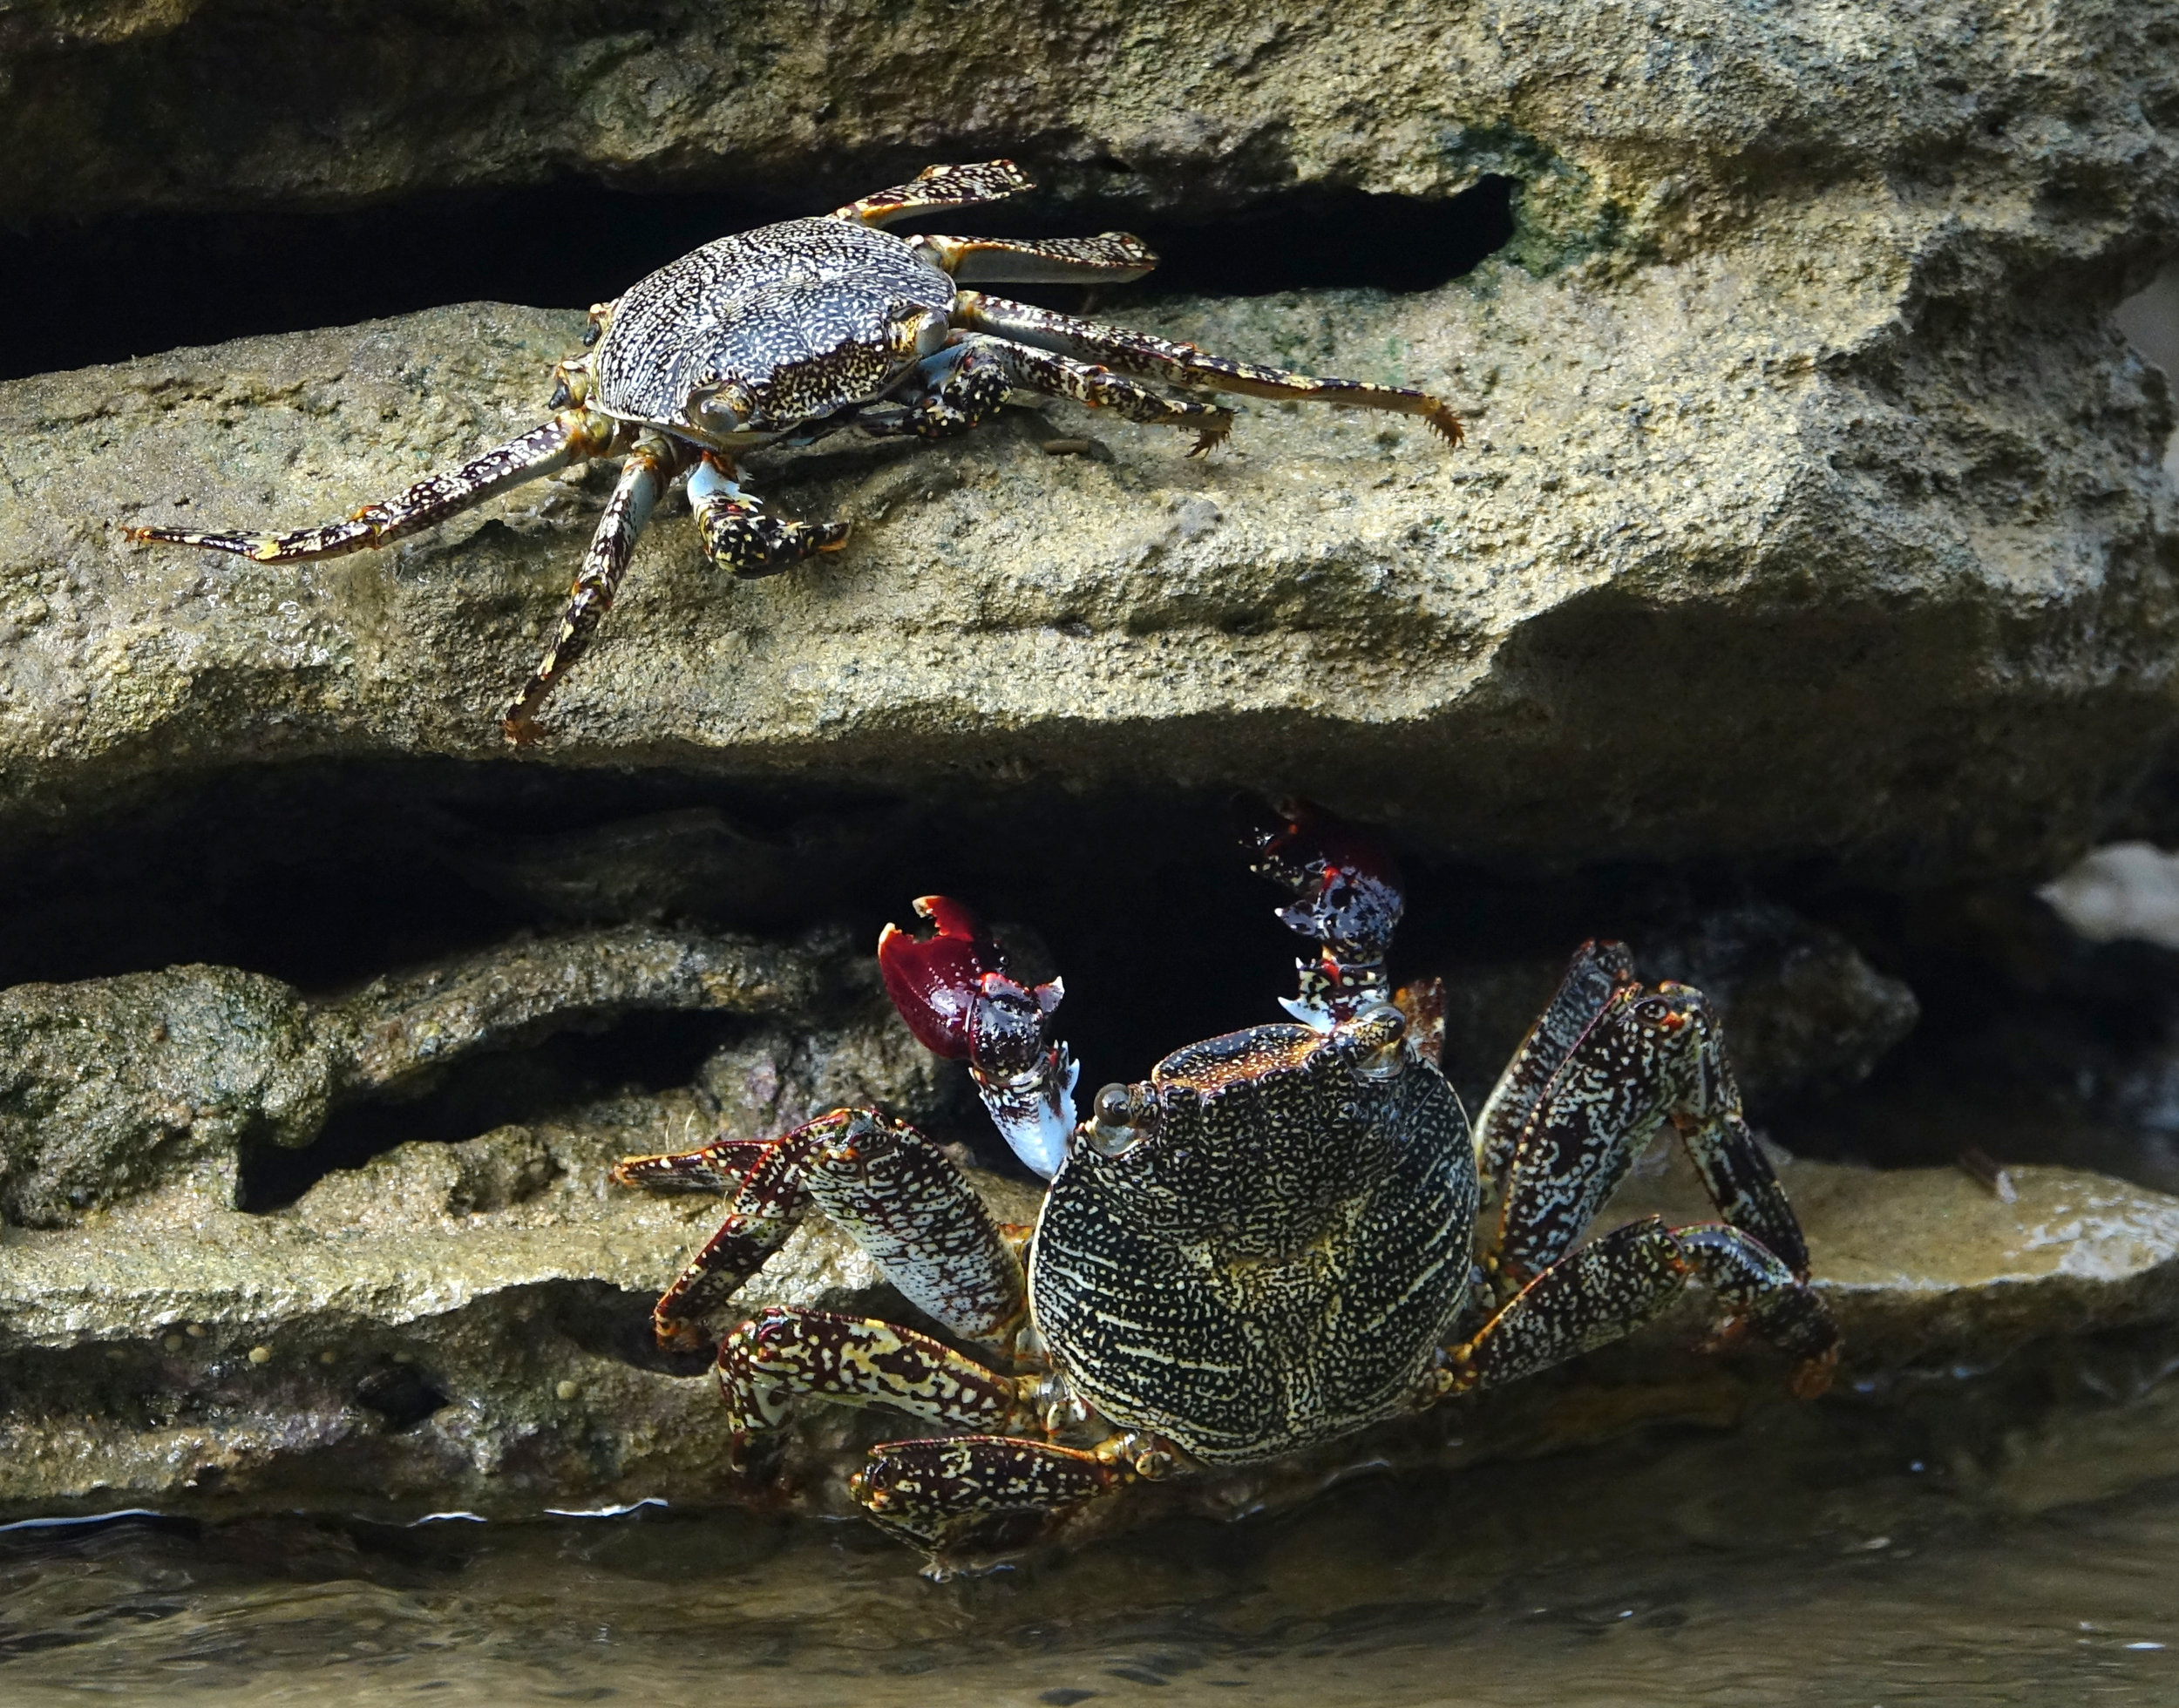 Grapsus spp., Basse-Terre, Guadeloupe, December 2017